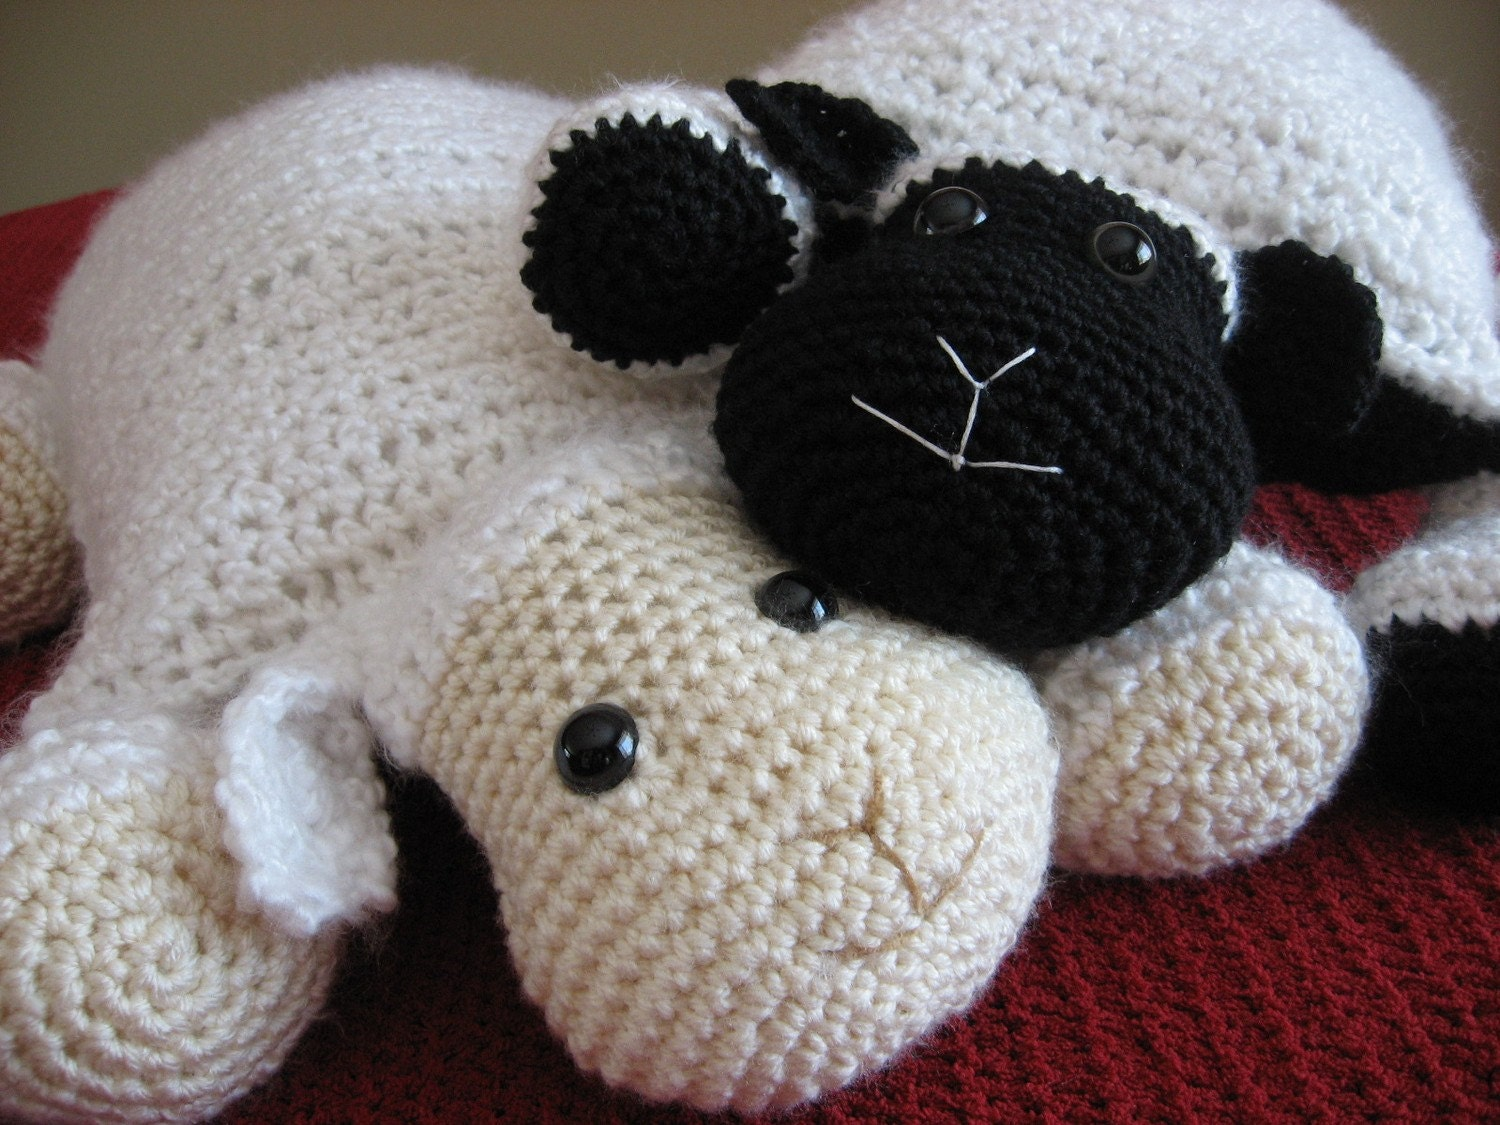 Free Crochet Pattern Baby Lamb : Crochet LambCute and Cuddly Crochet Critter PillowCrochet